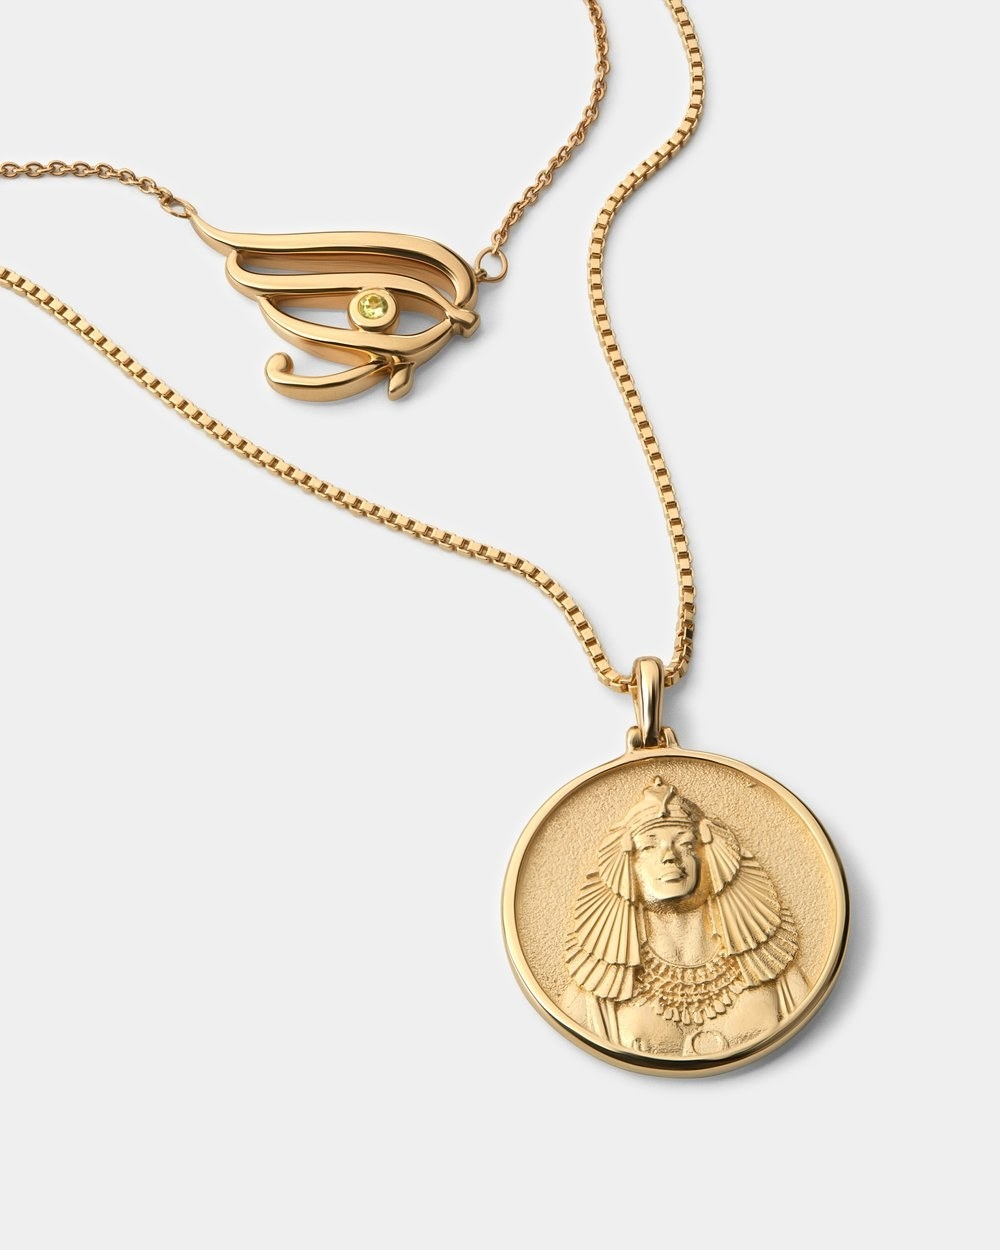 gold necklace with Cleopatra-inspired engraving